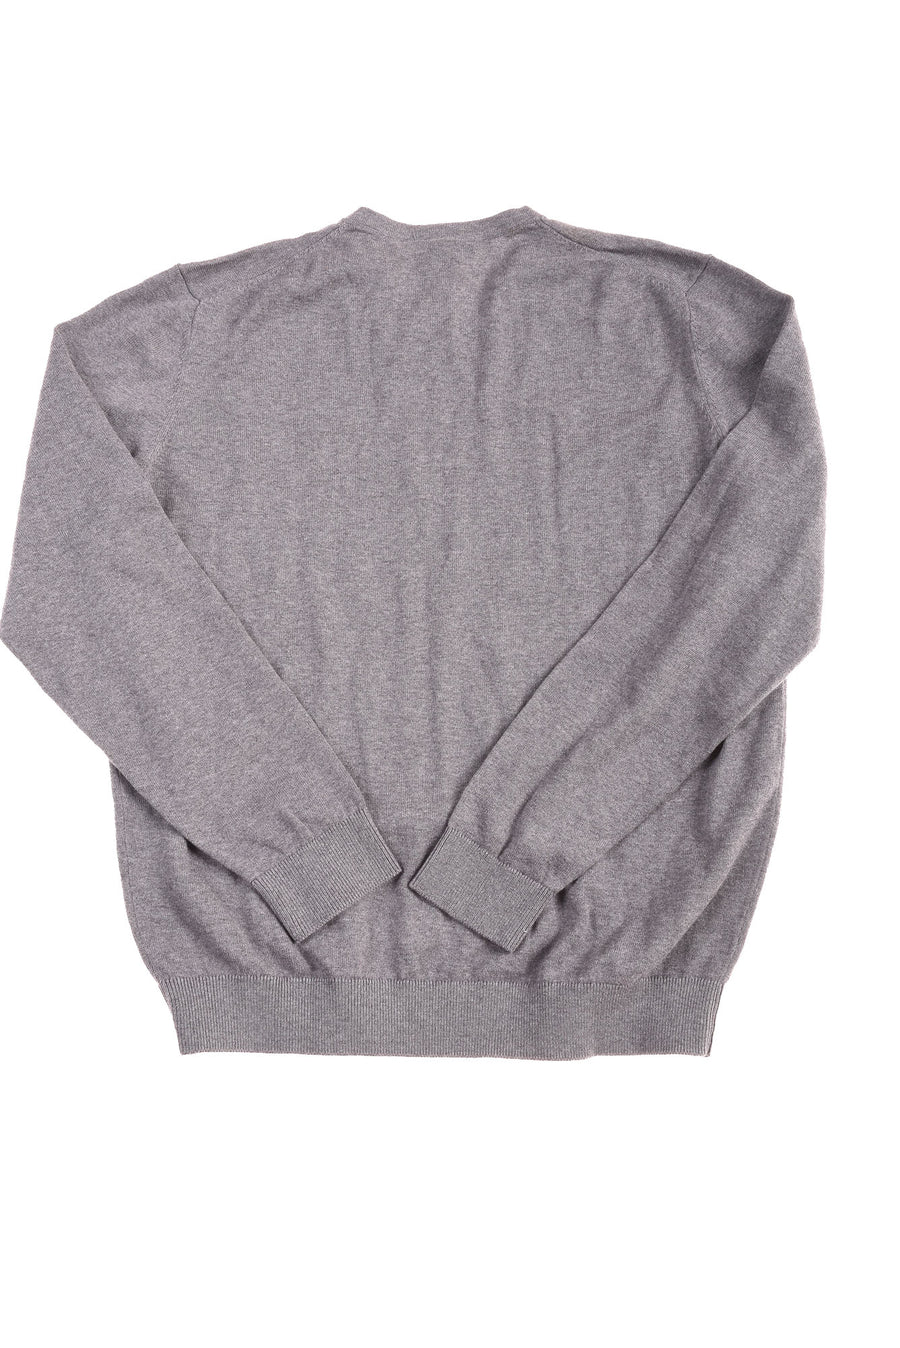 NEW Lacoste Men's Sweater Large Gray